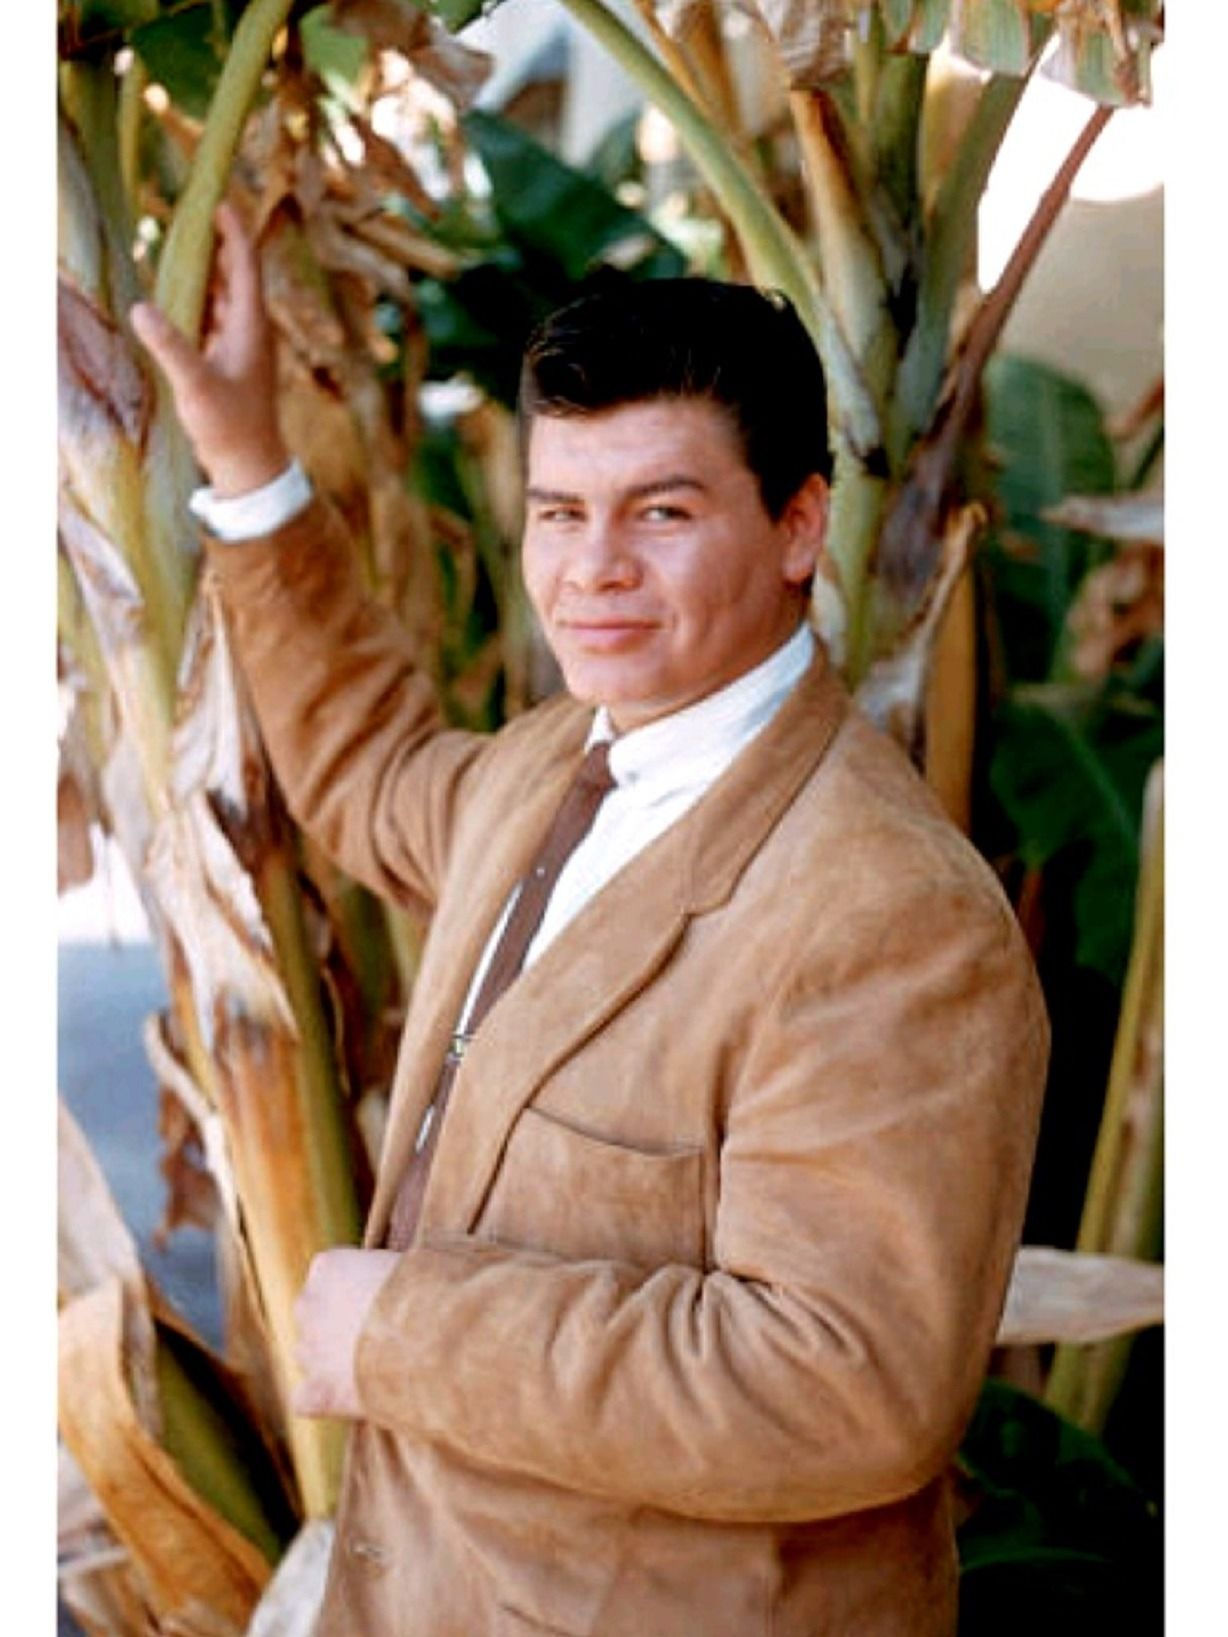 Ritchie Valens died at age 17 in the plane crash that